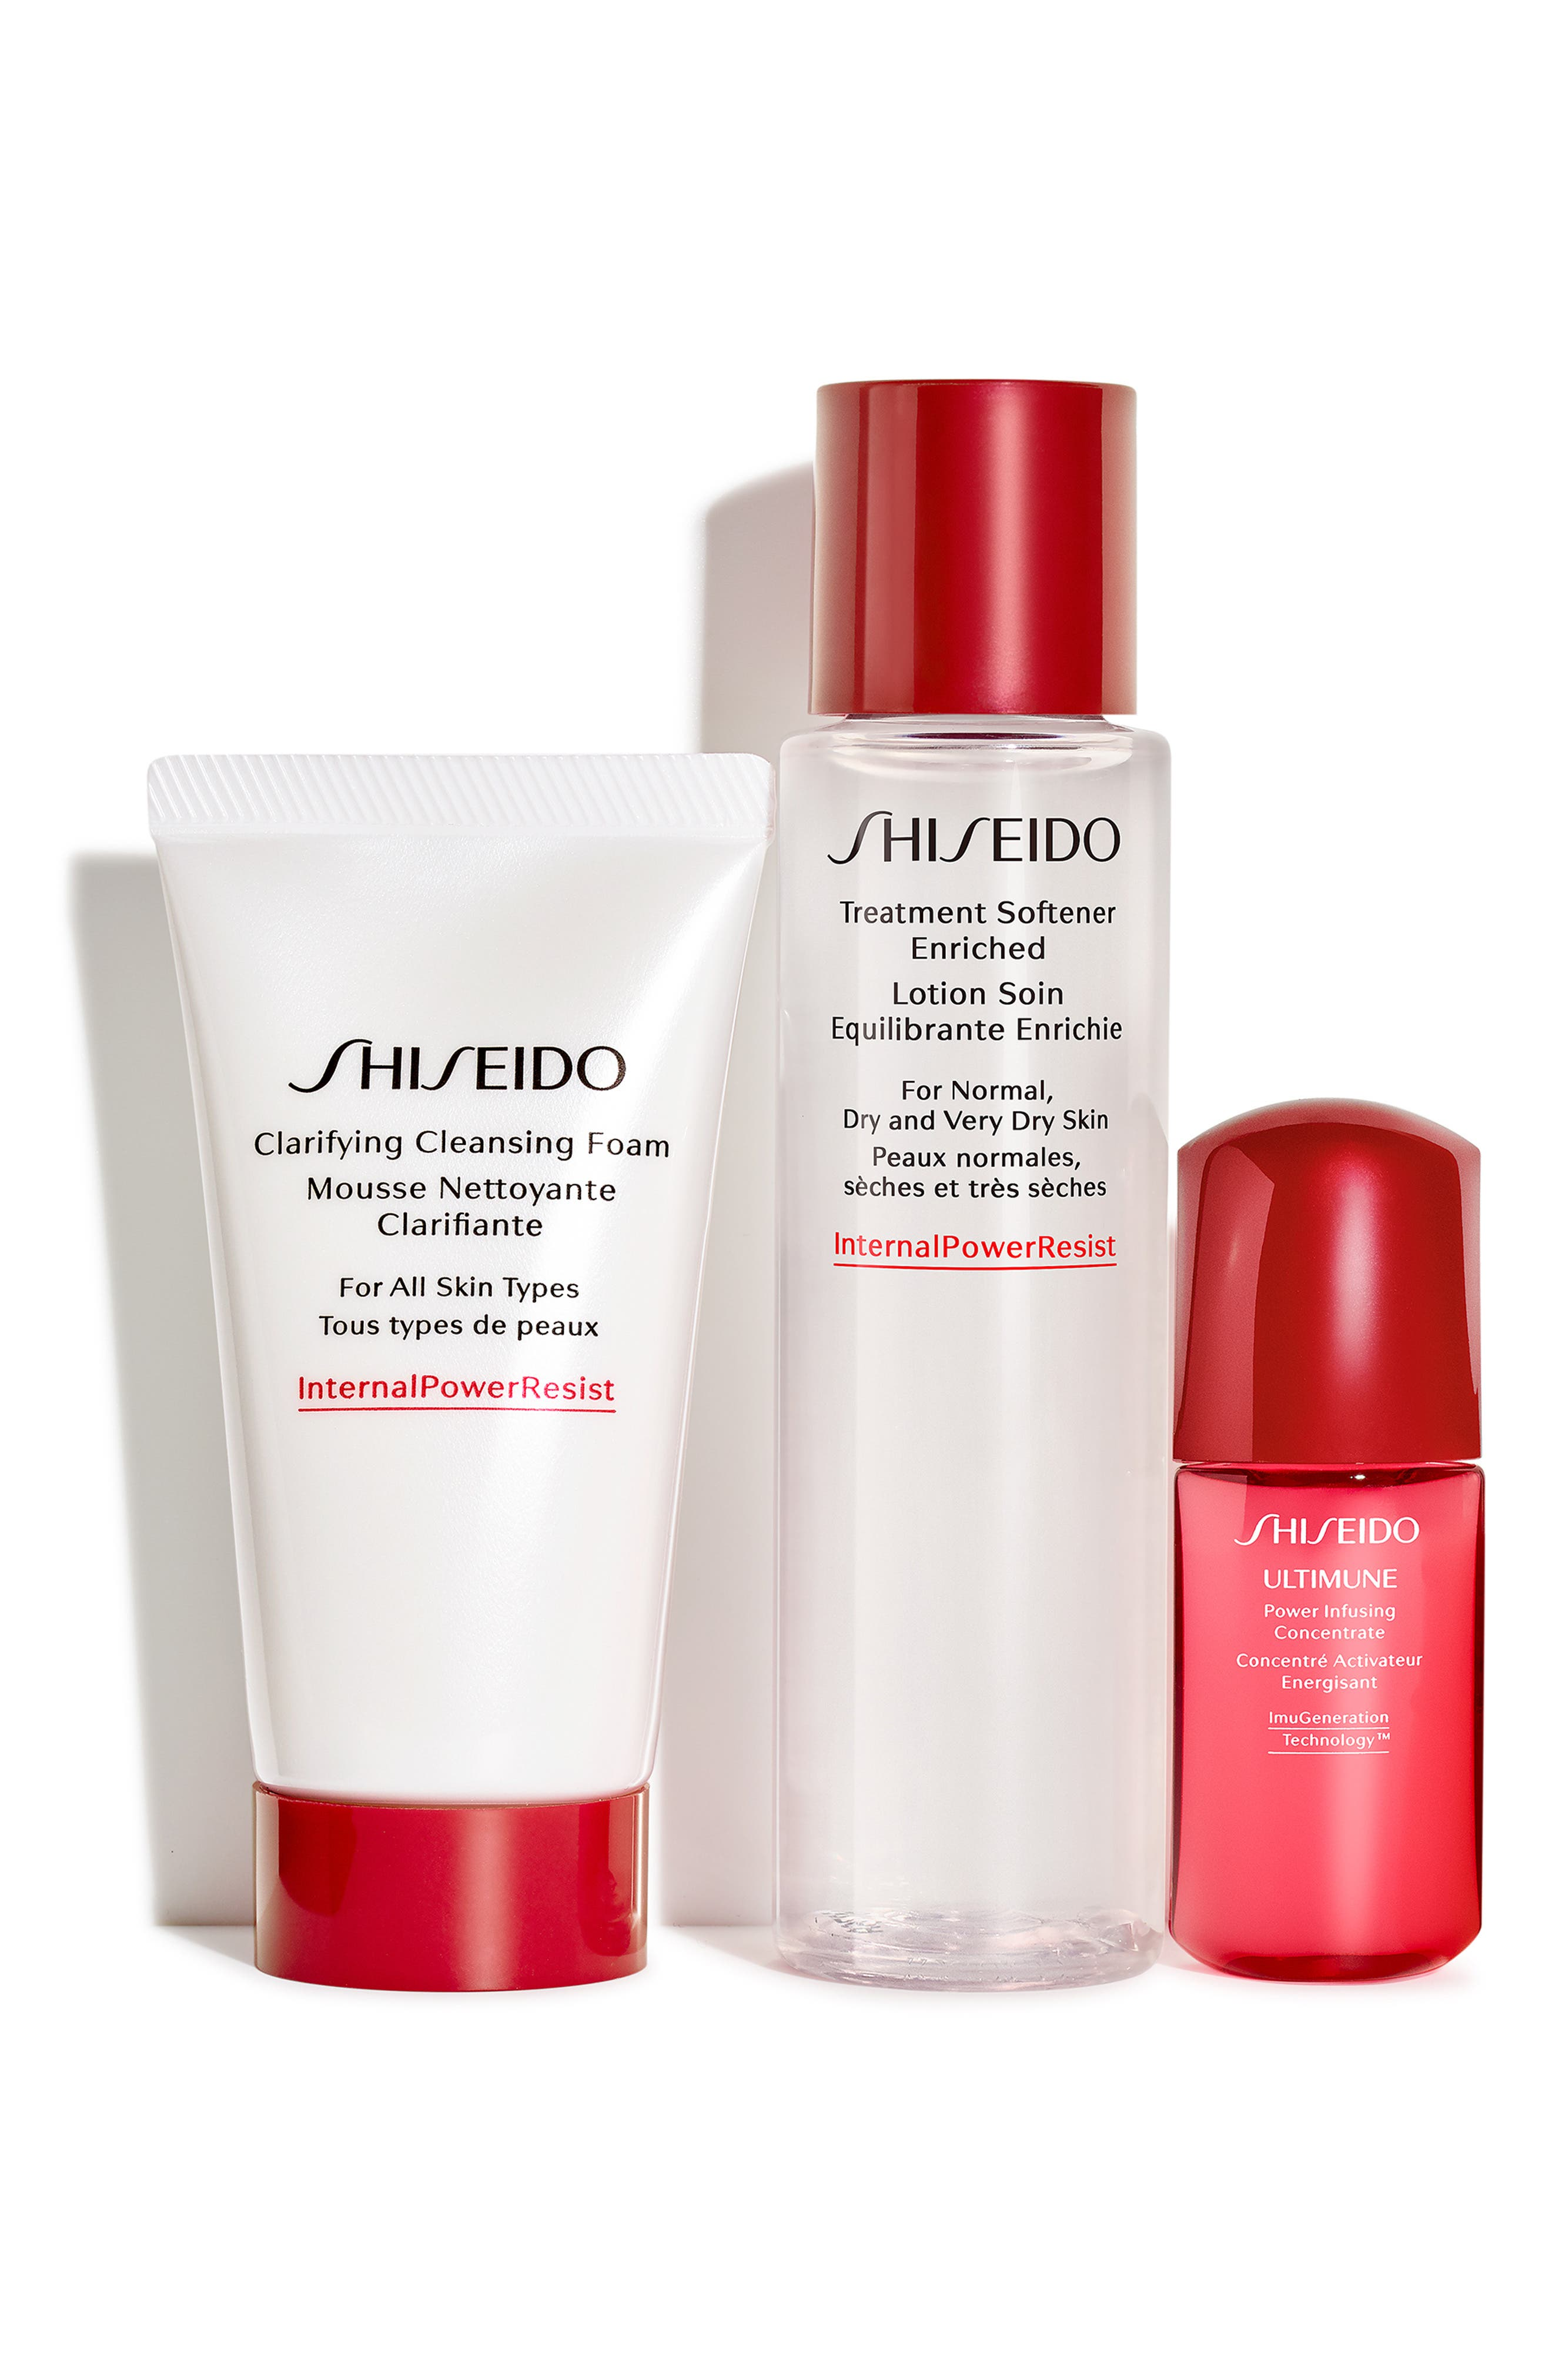 Shisiedo The Gift of Cleansing Essentials Set,                             Main thumbnail 1, color,                             000